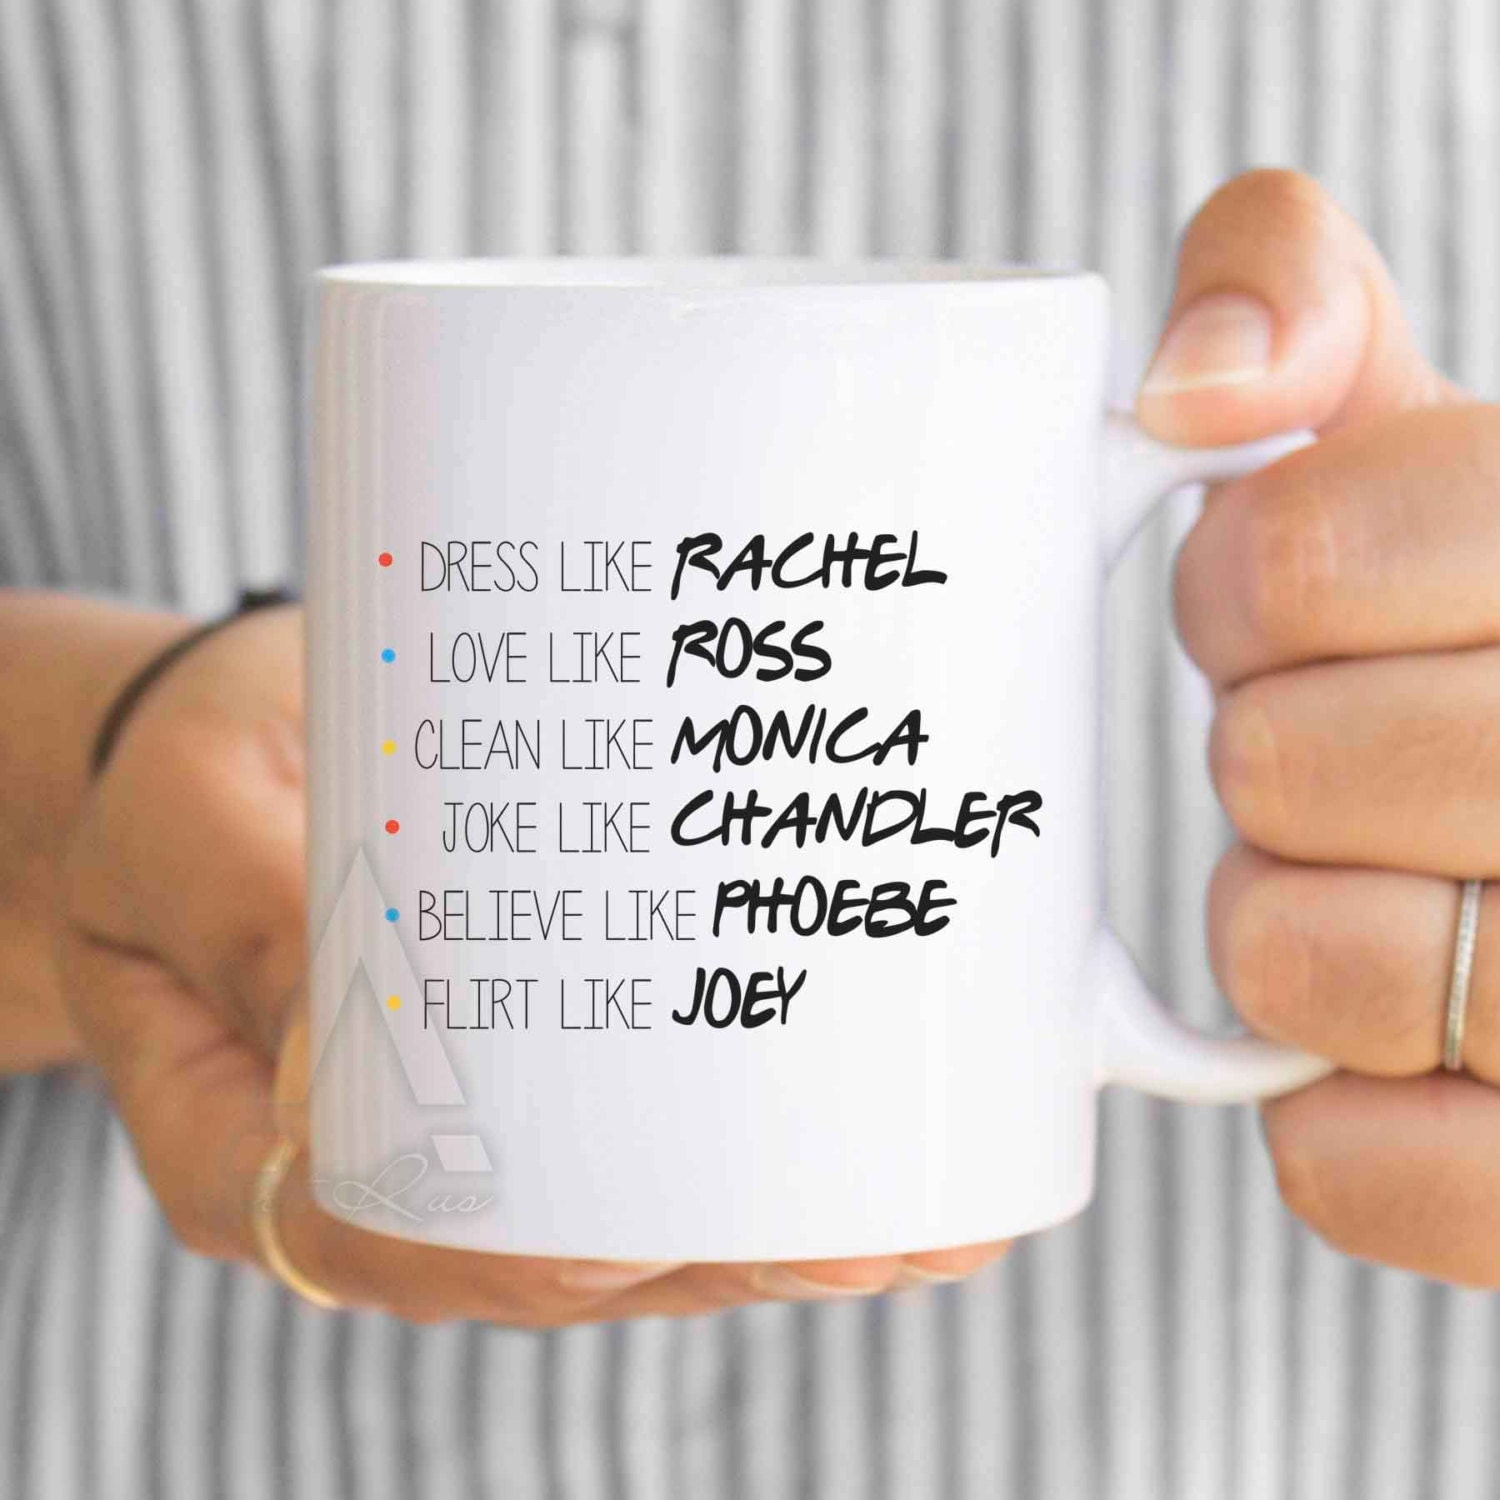 A Wedding Gift For A Friend : Graduation gifts for him FRIENDS Mug engagement gift best